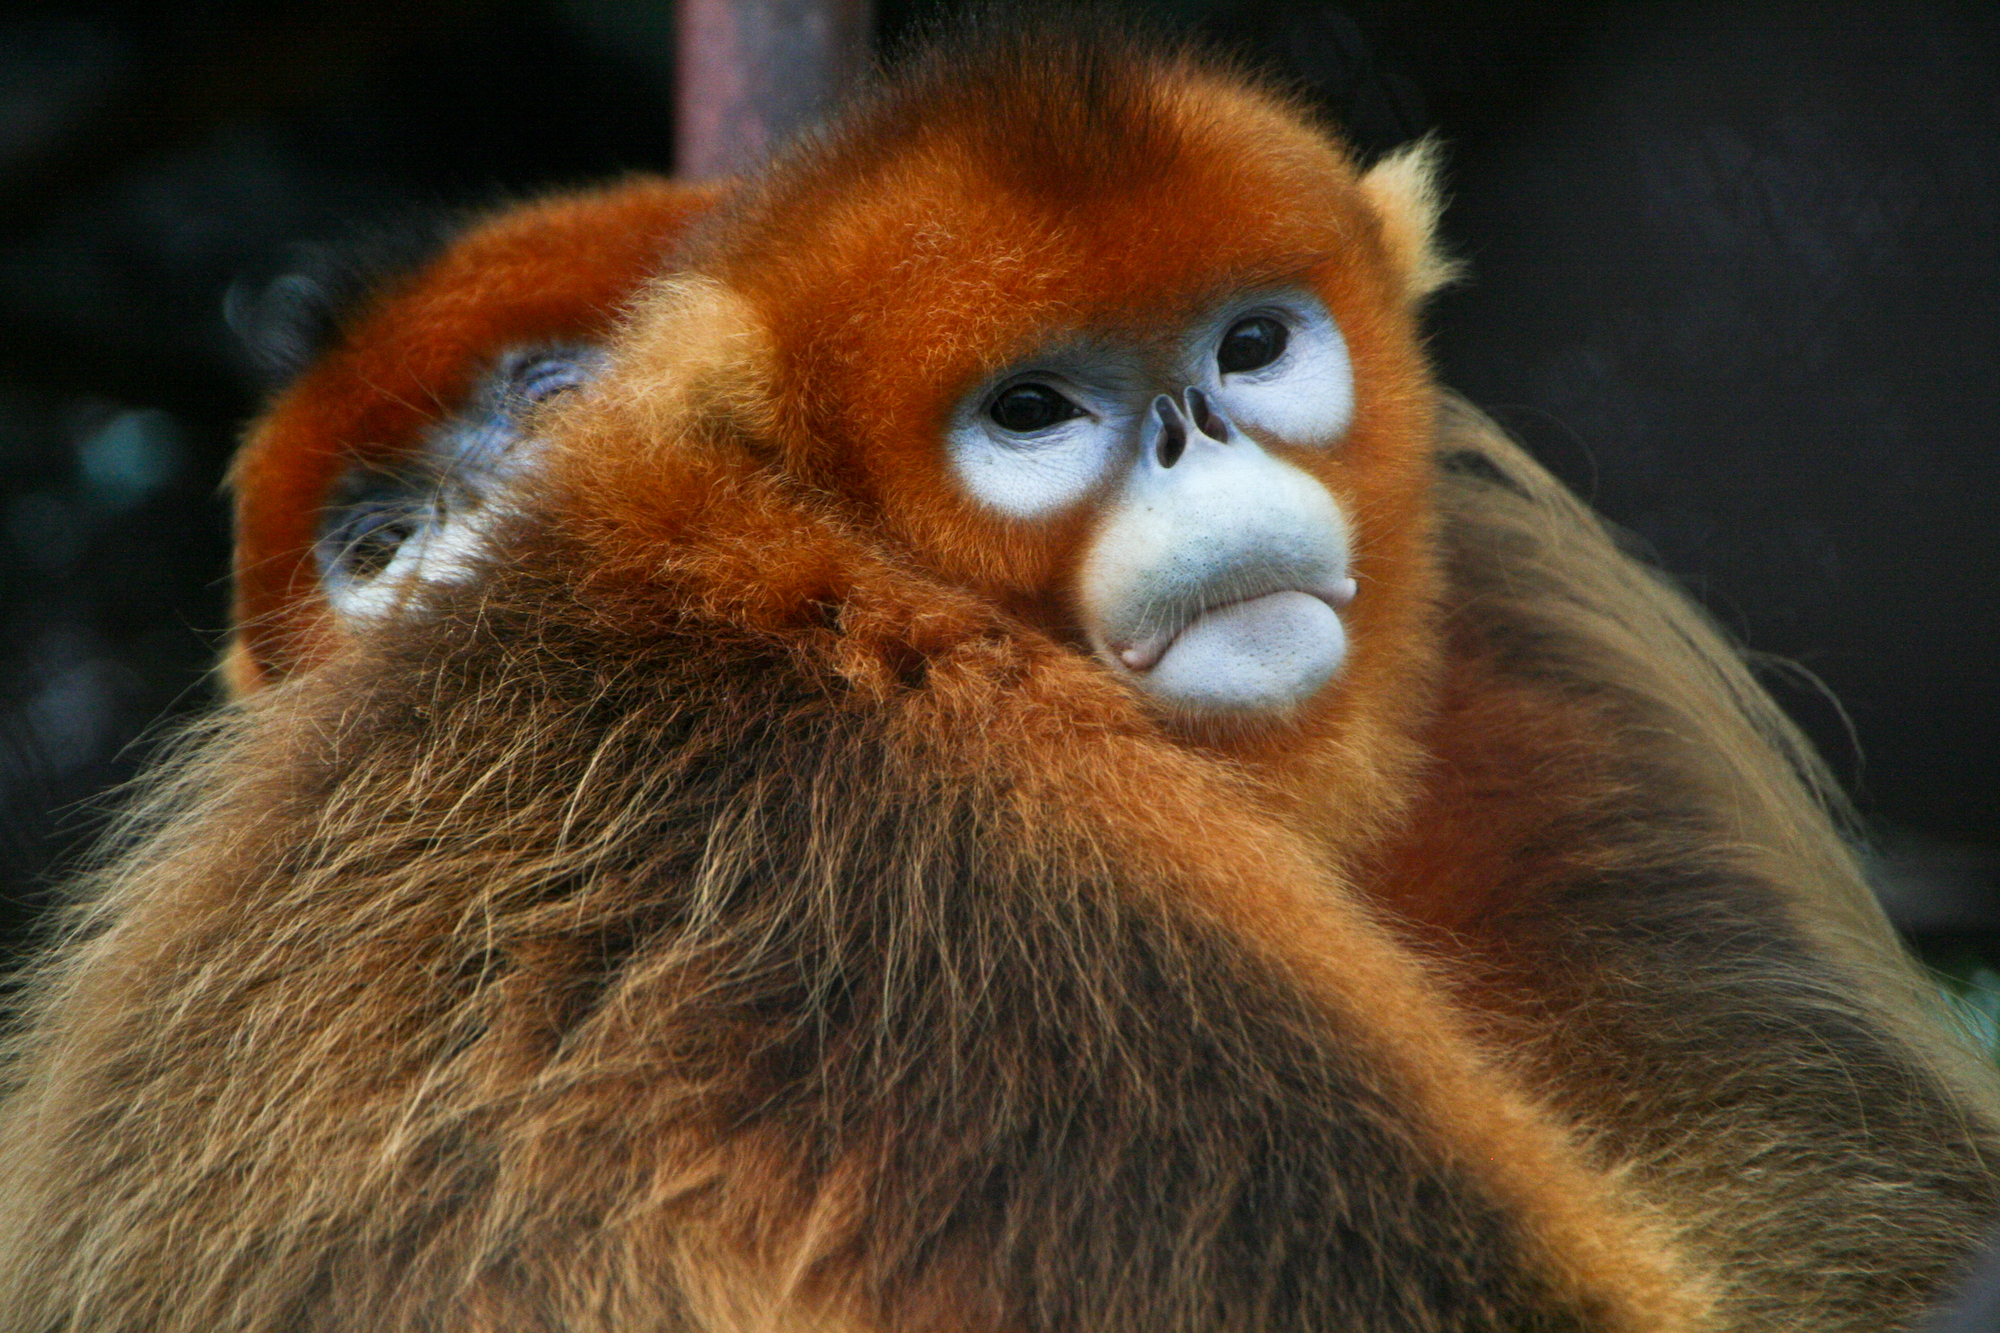 https://upload.wikimedia.org/wikipedia/commons/9/91/Golden_Snub-nosed_Monkeys.jpg